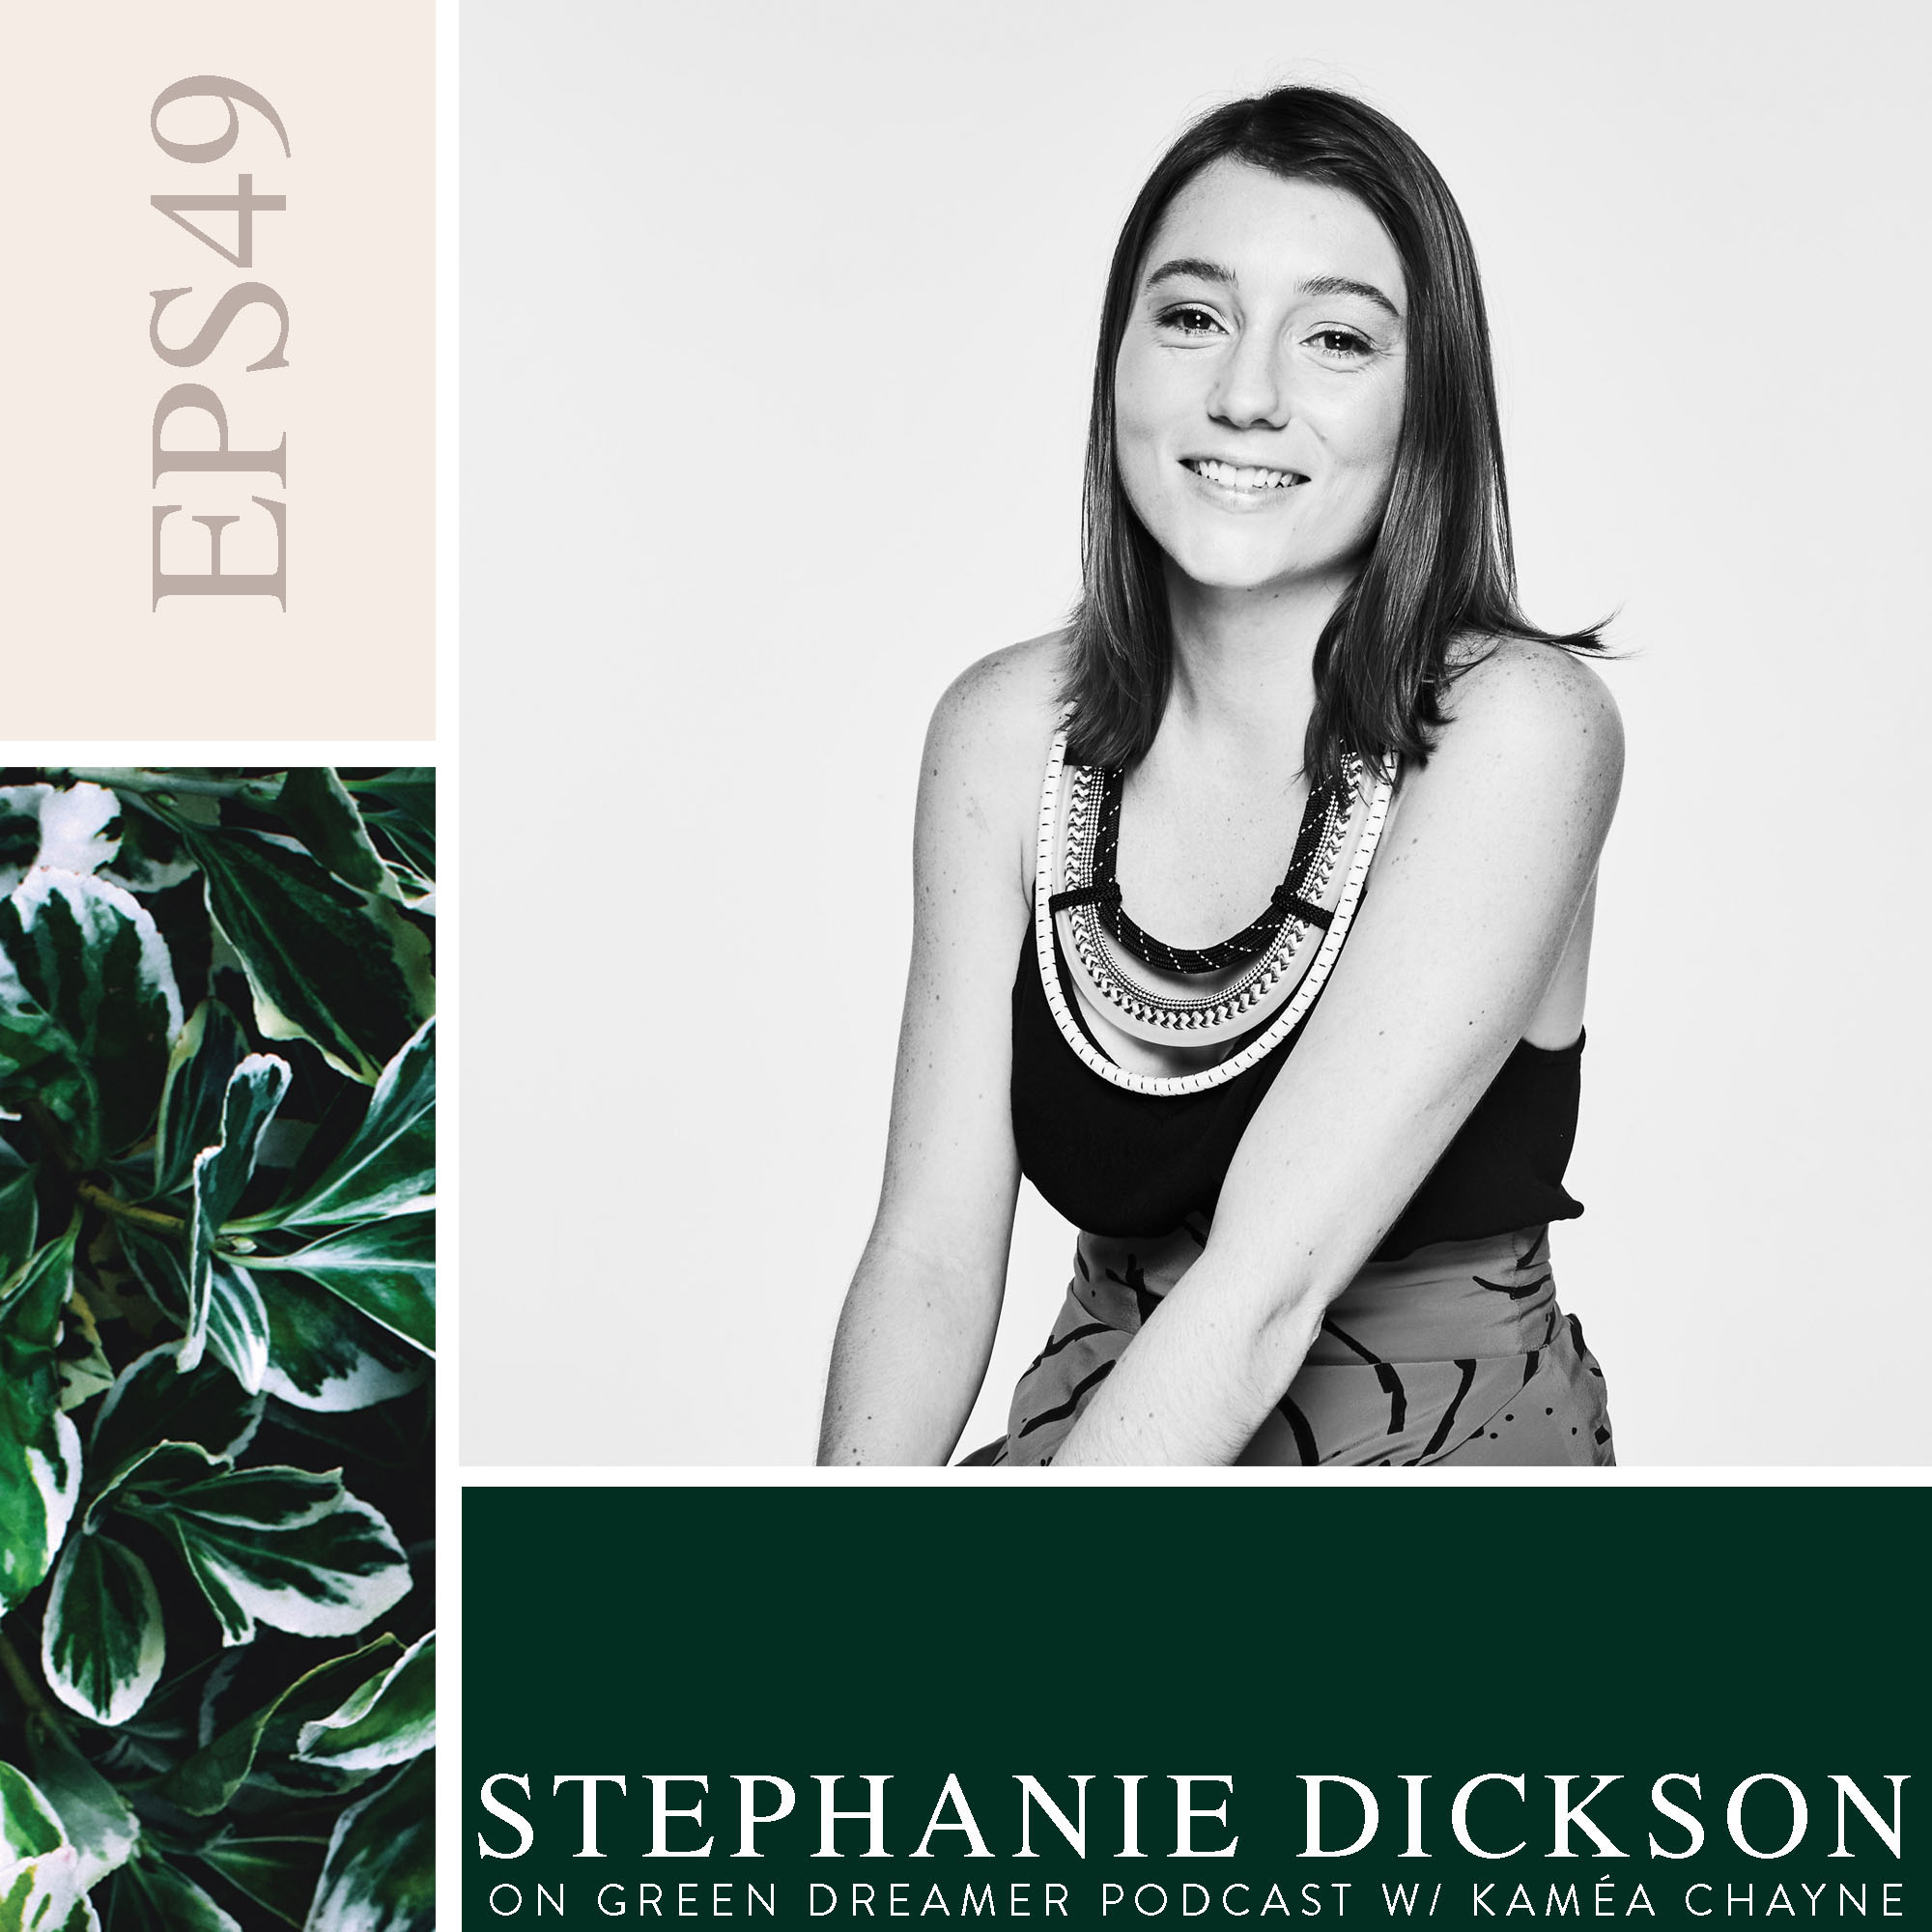 49) BW Stephanie-Dickson-of-Green-Is-The-New-Black-on-Green-Dreamer-Podcast-with-Kaméa-Chayne.jpg